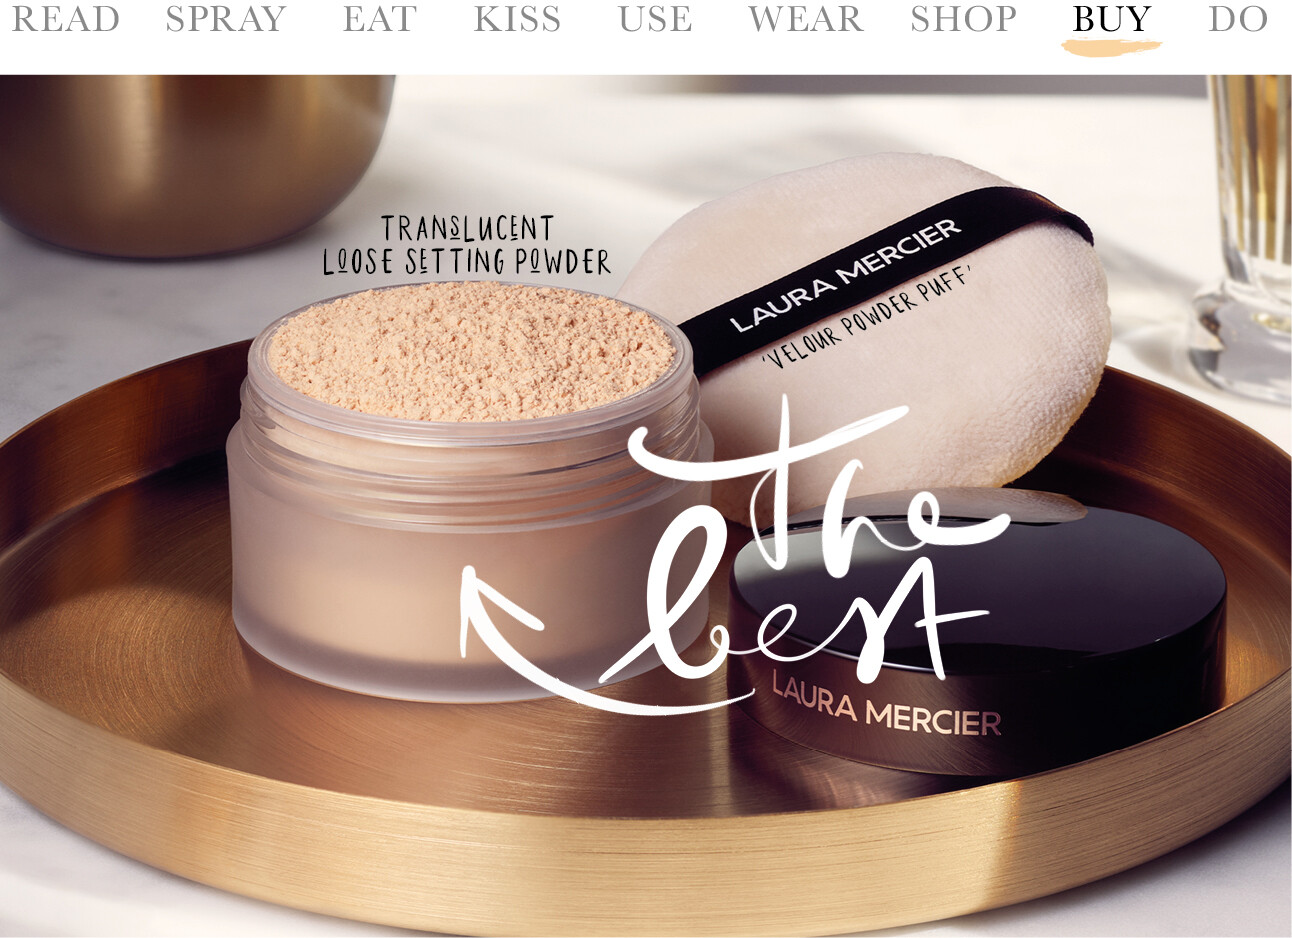 today-we-buy-Translucent-lauramercier-loose-setting-powder